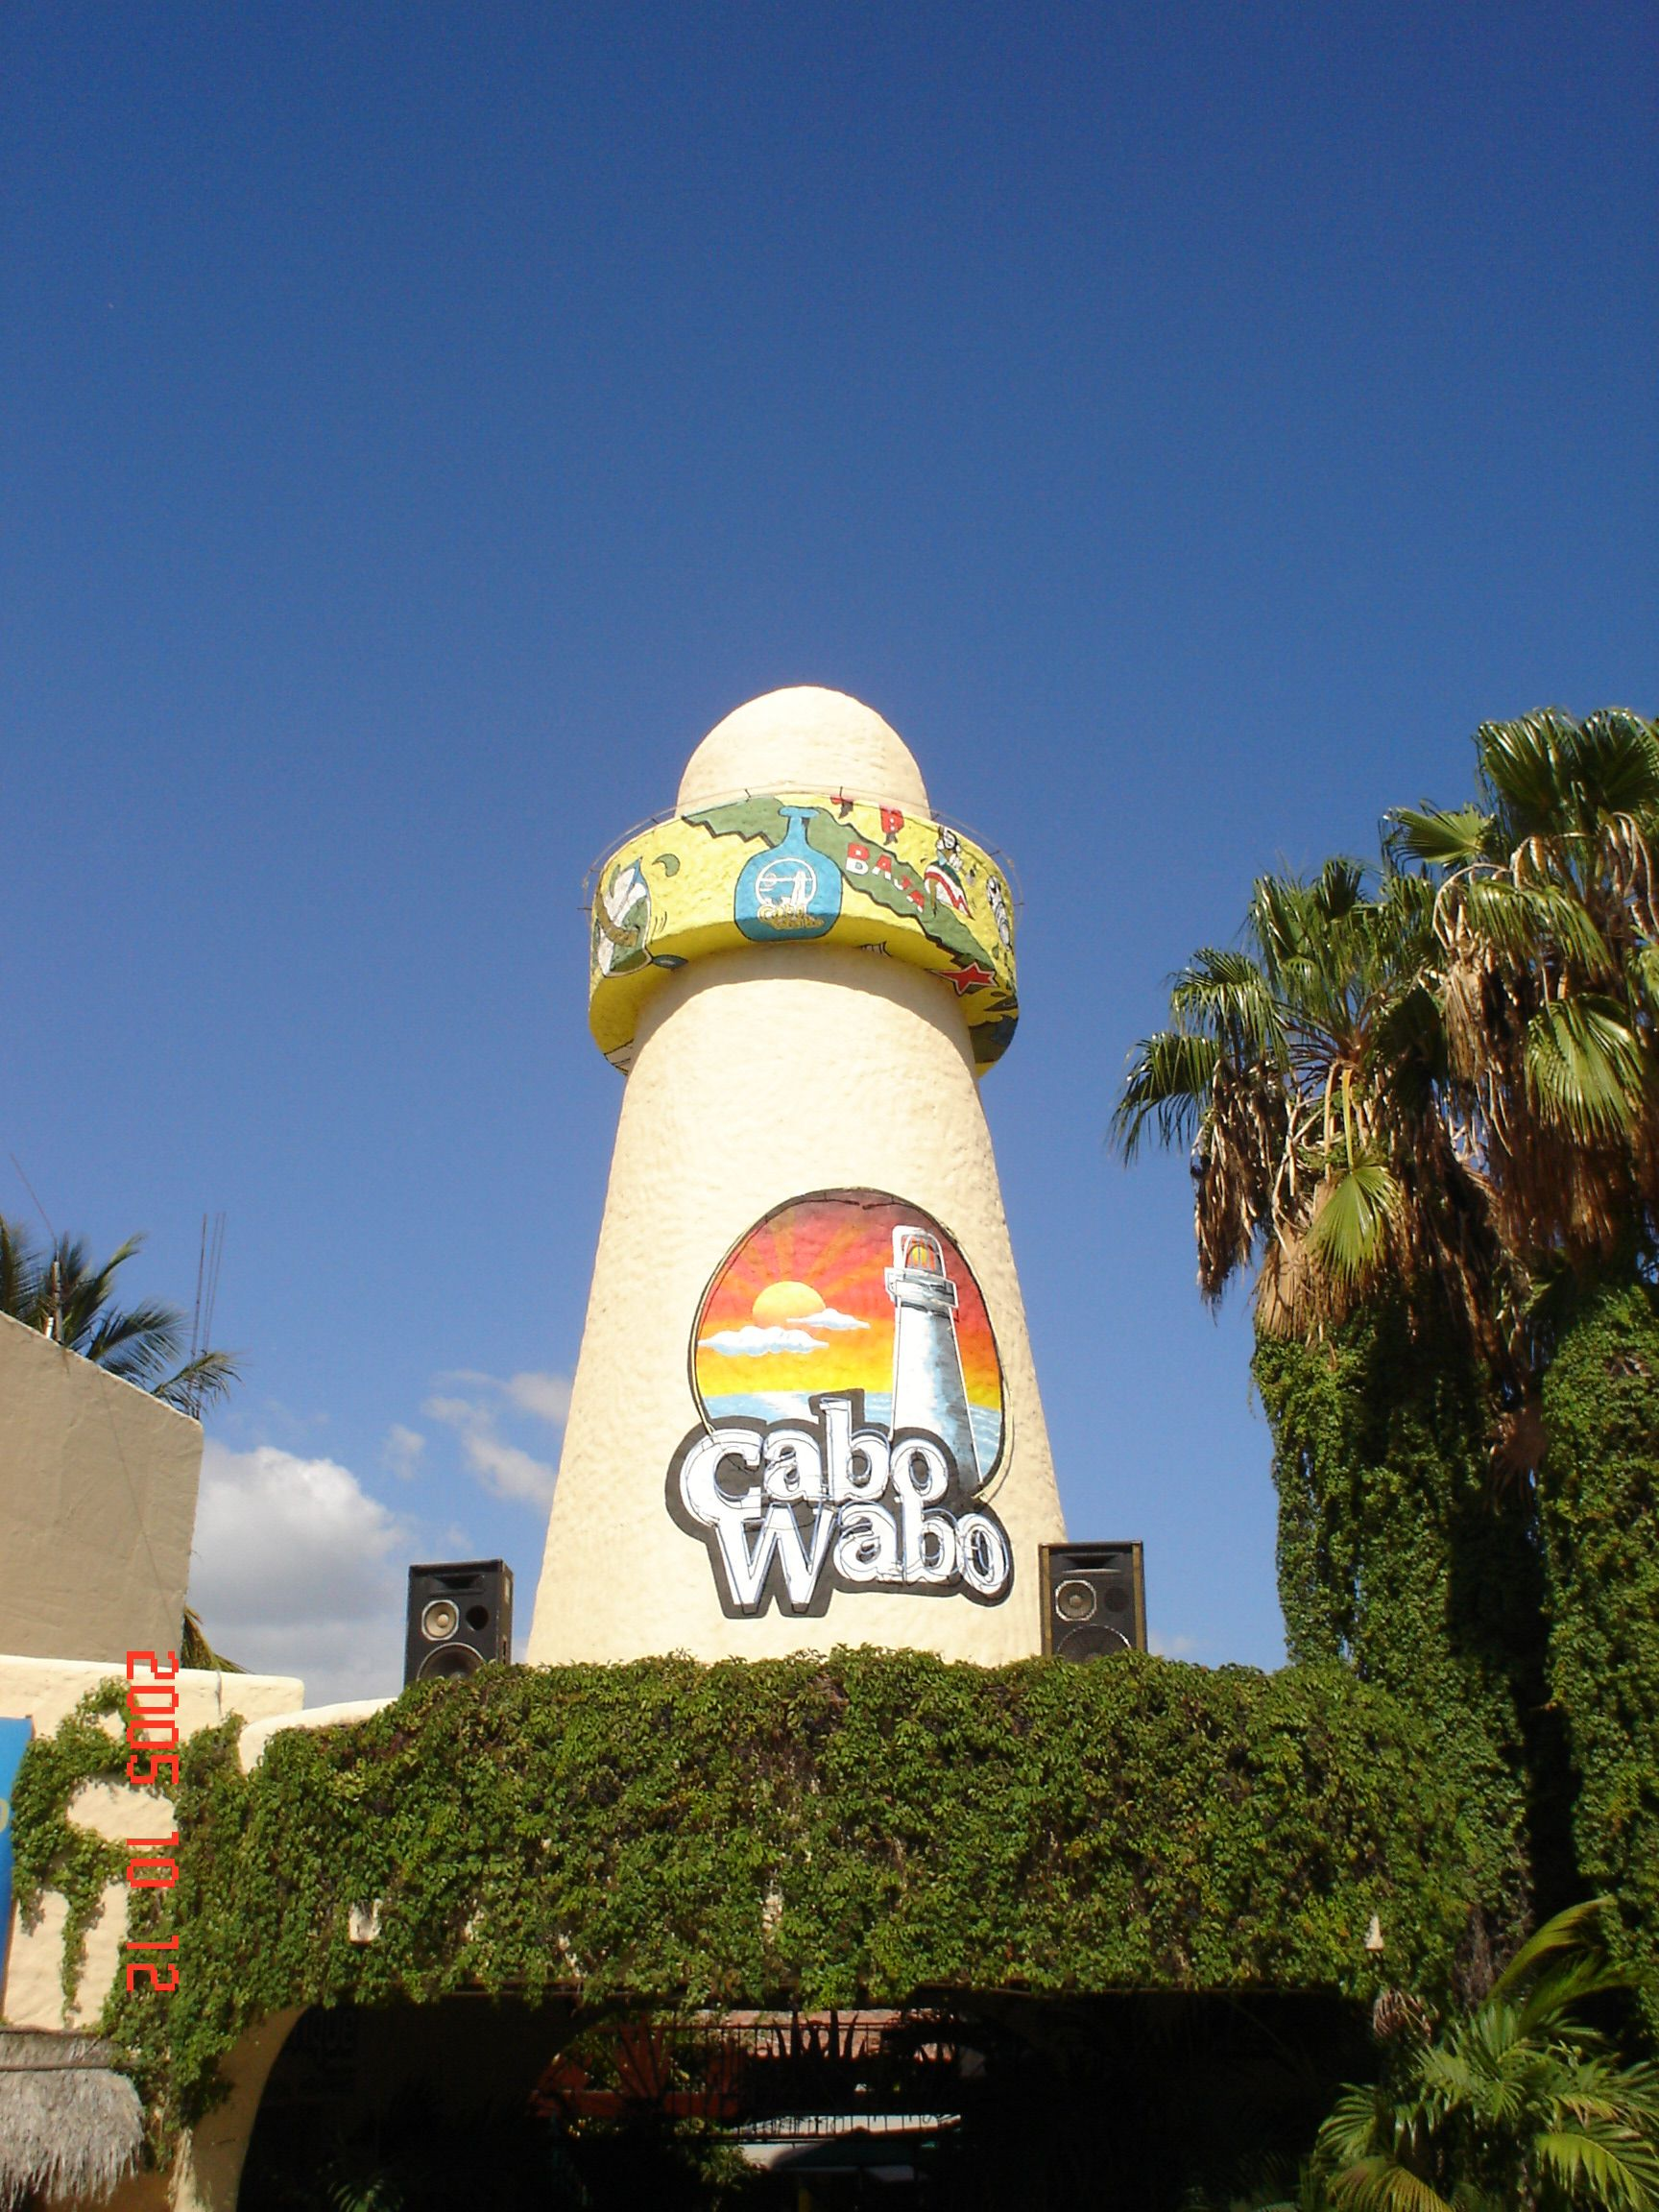 The Famous Cabo Wabo Cantina Run By Sammy Hagar Pretty Decent Food Cabo San Lucas Mexico Cabo San Lucas Cabo